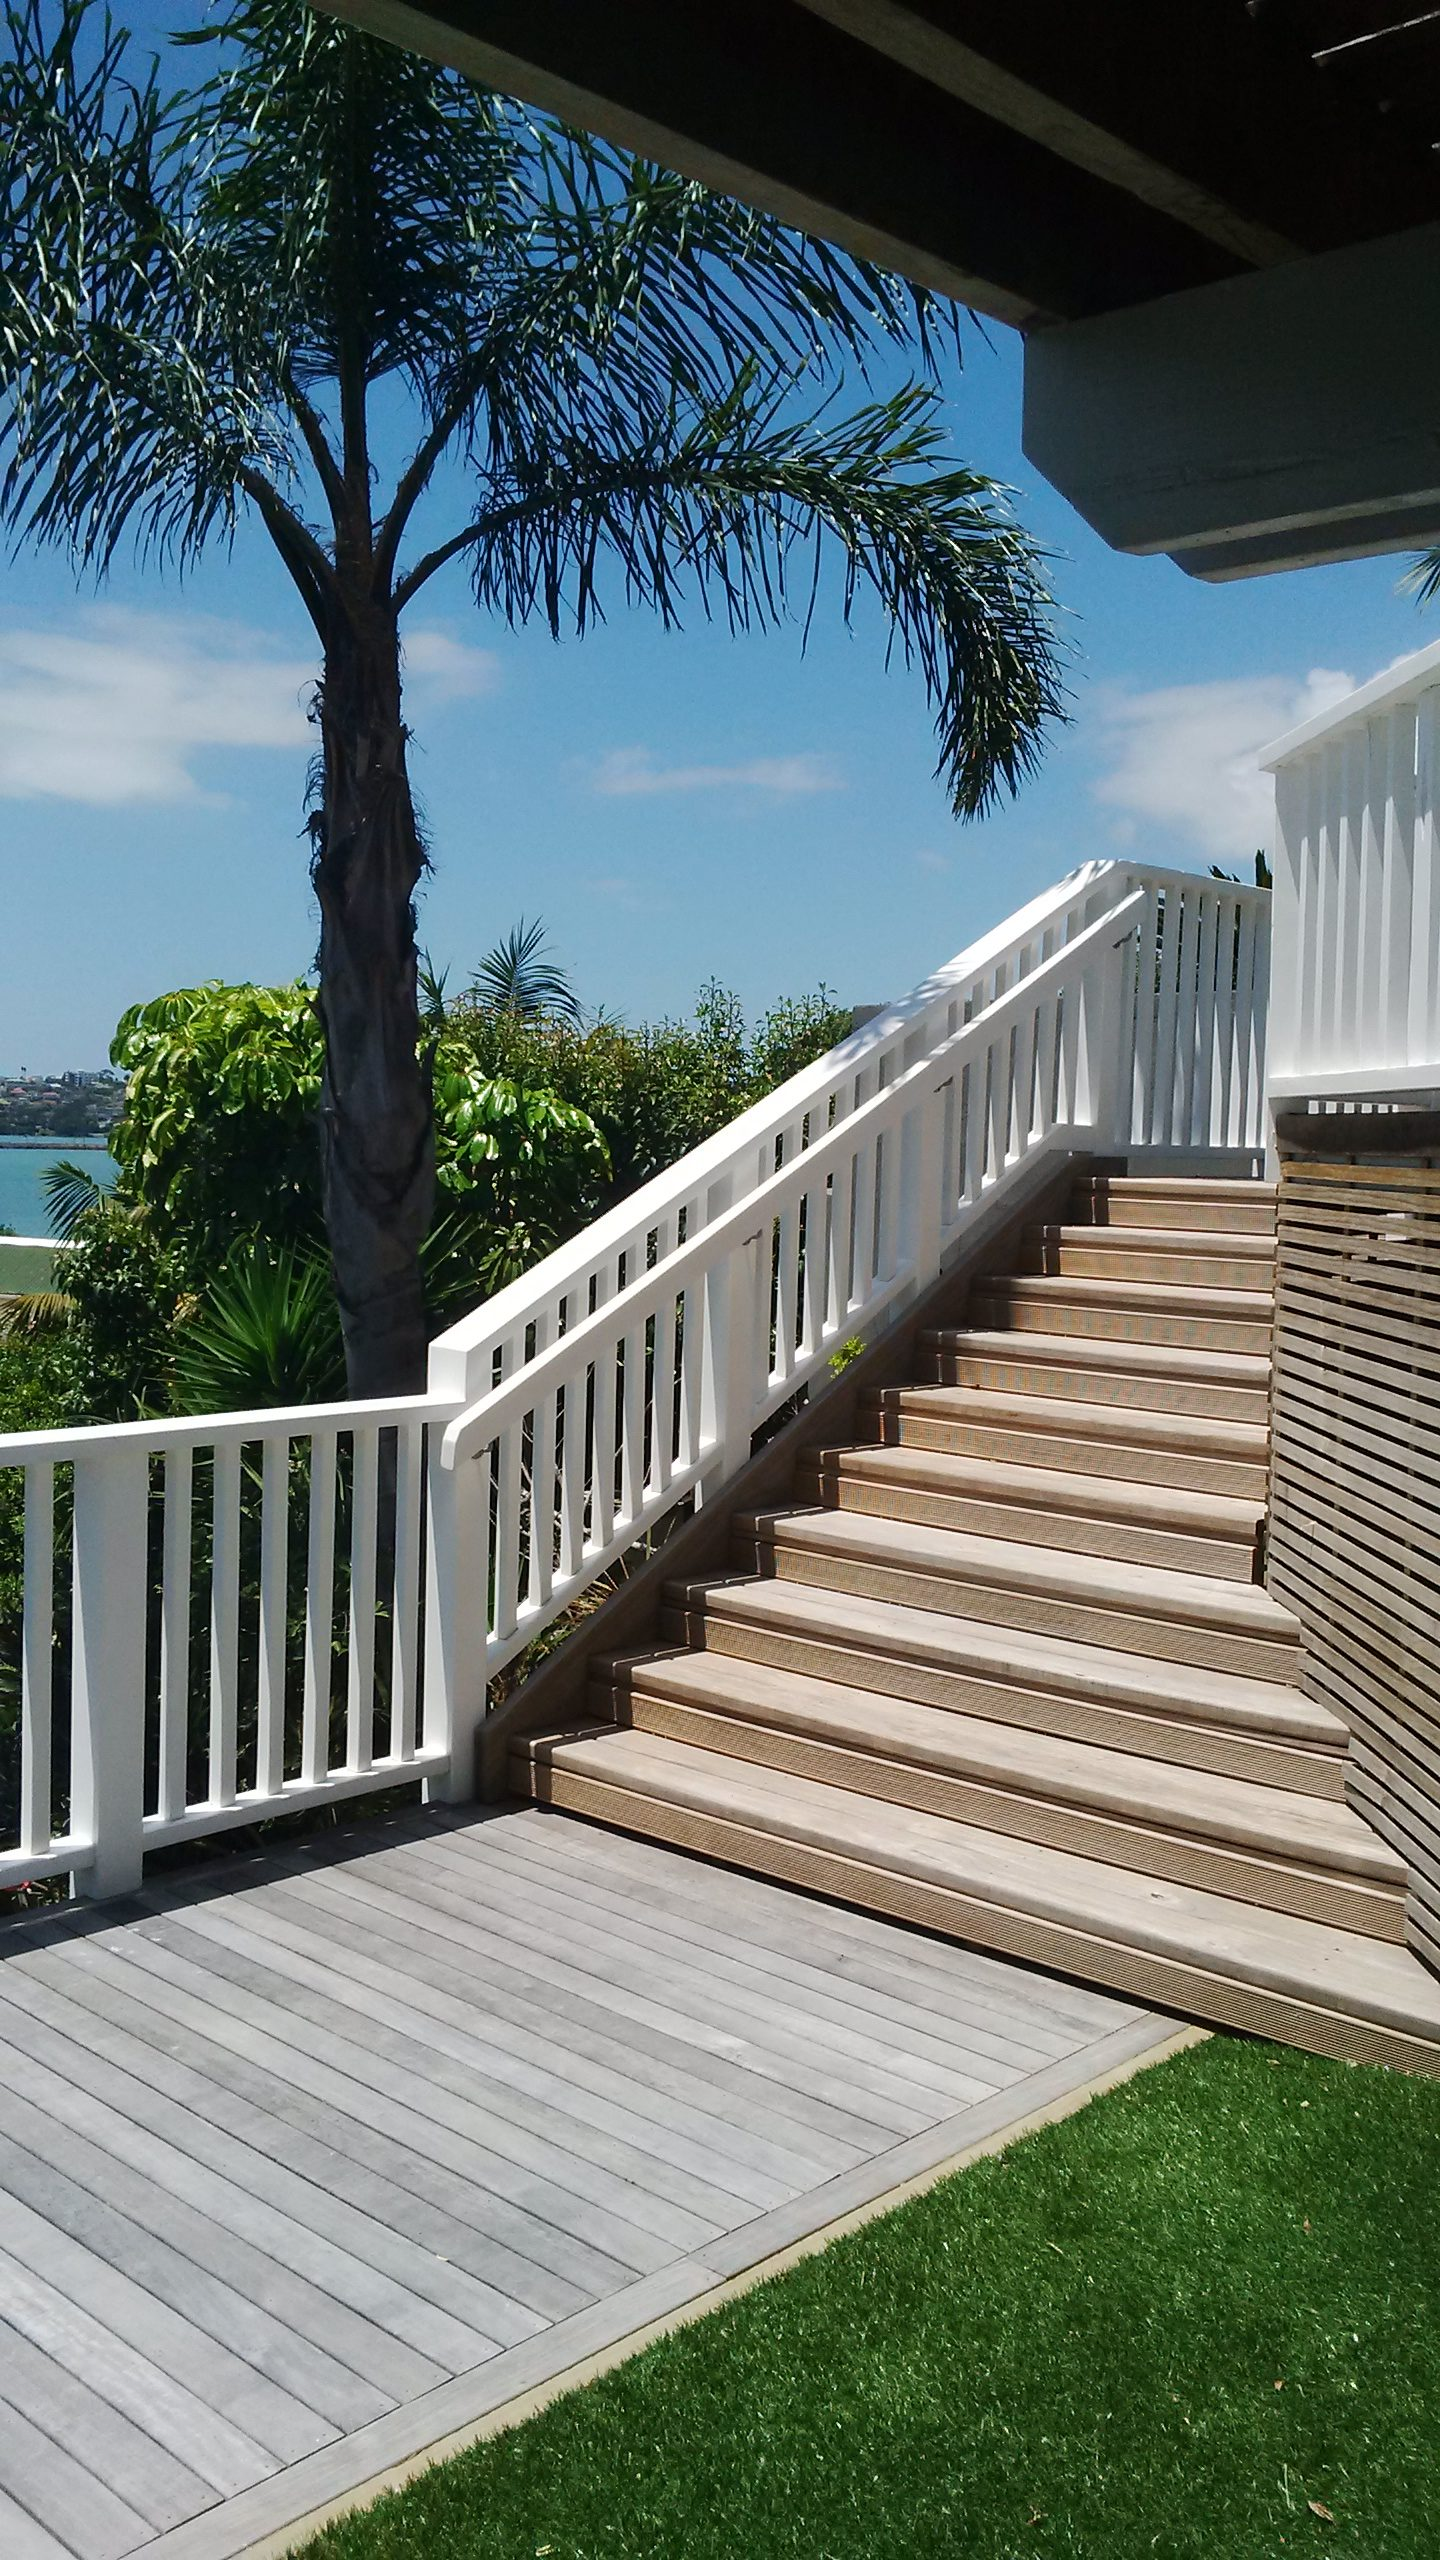 Exterior Wooden Stairs by Top Flyte Systems